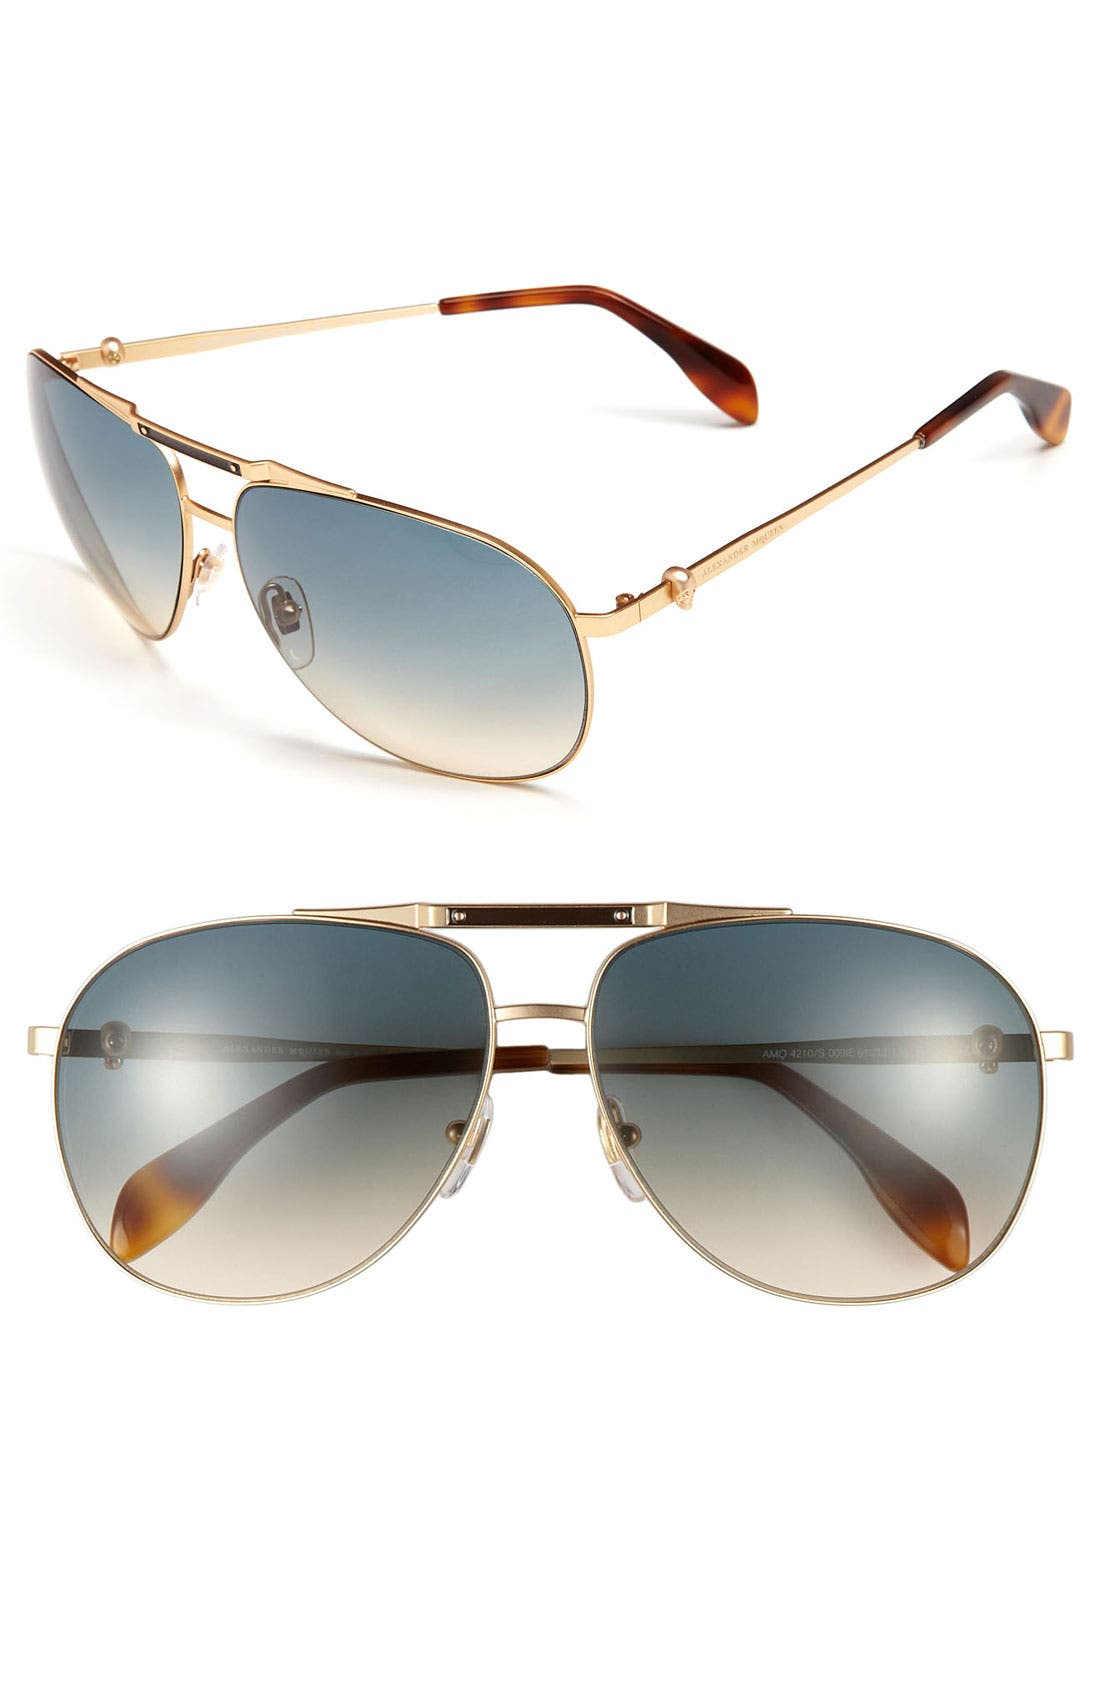 Main Image - Alexander McQueen 61mm Metal Aviator Sunglasses